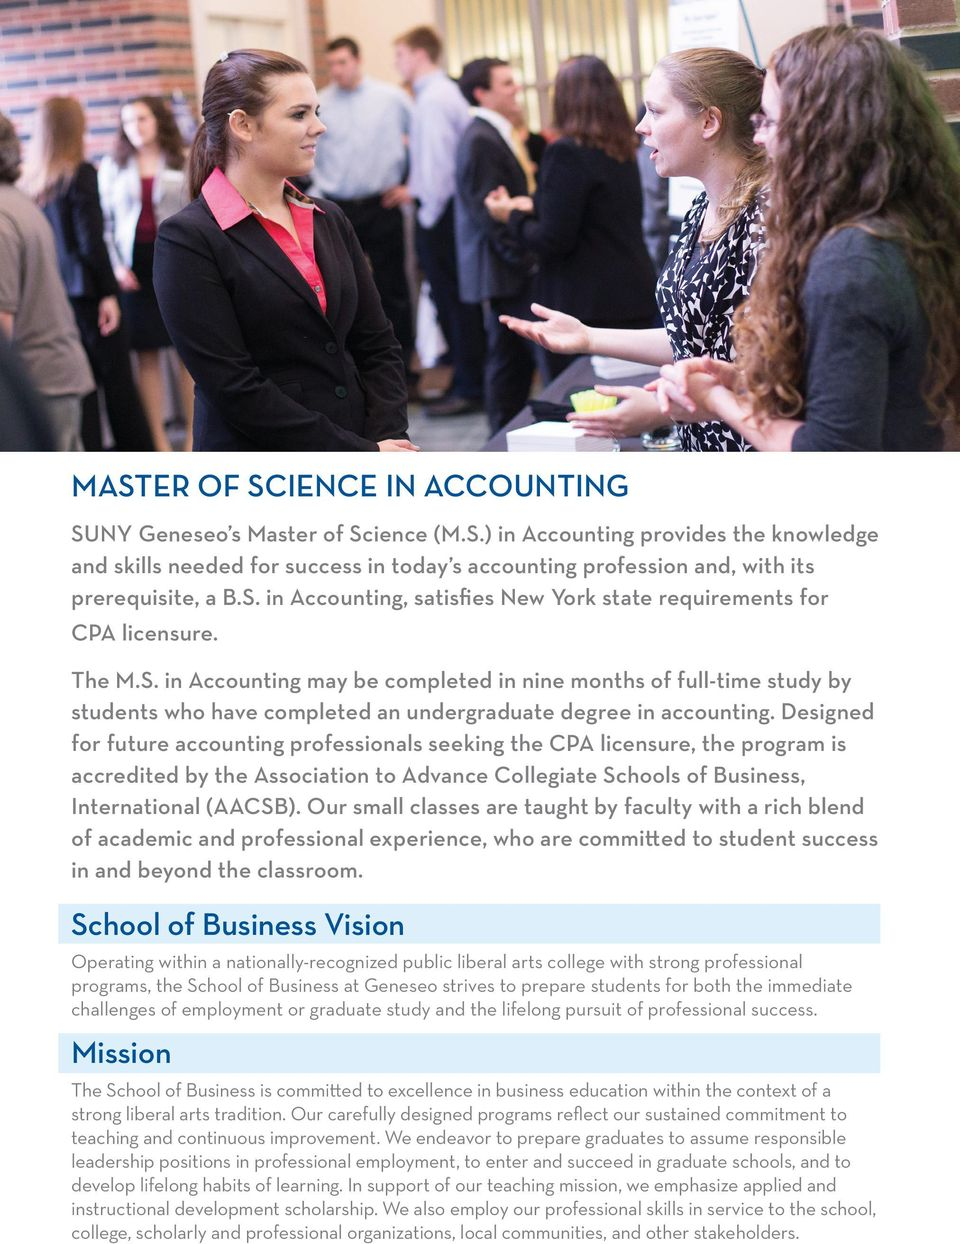 Designed for future accounting professionals seeking the CPA licensure, the program is accredited by the Association to Advance Collegiate Schools of Business, International (AACSB).